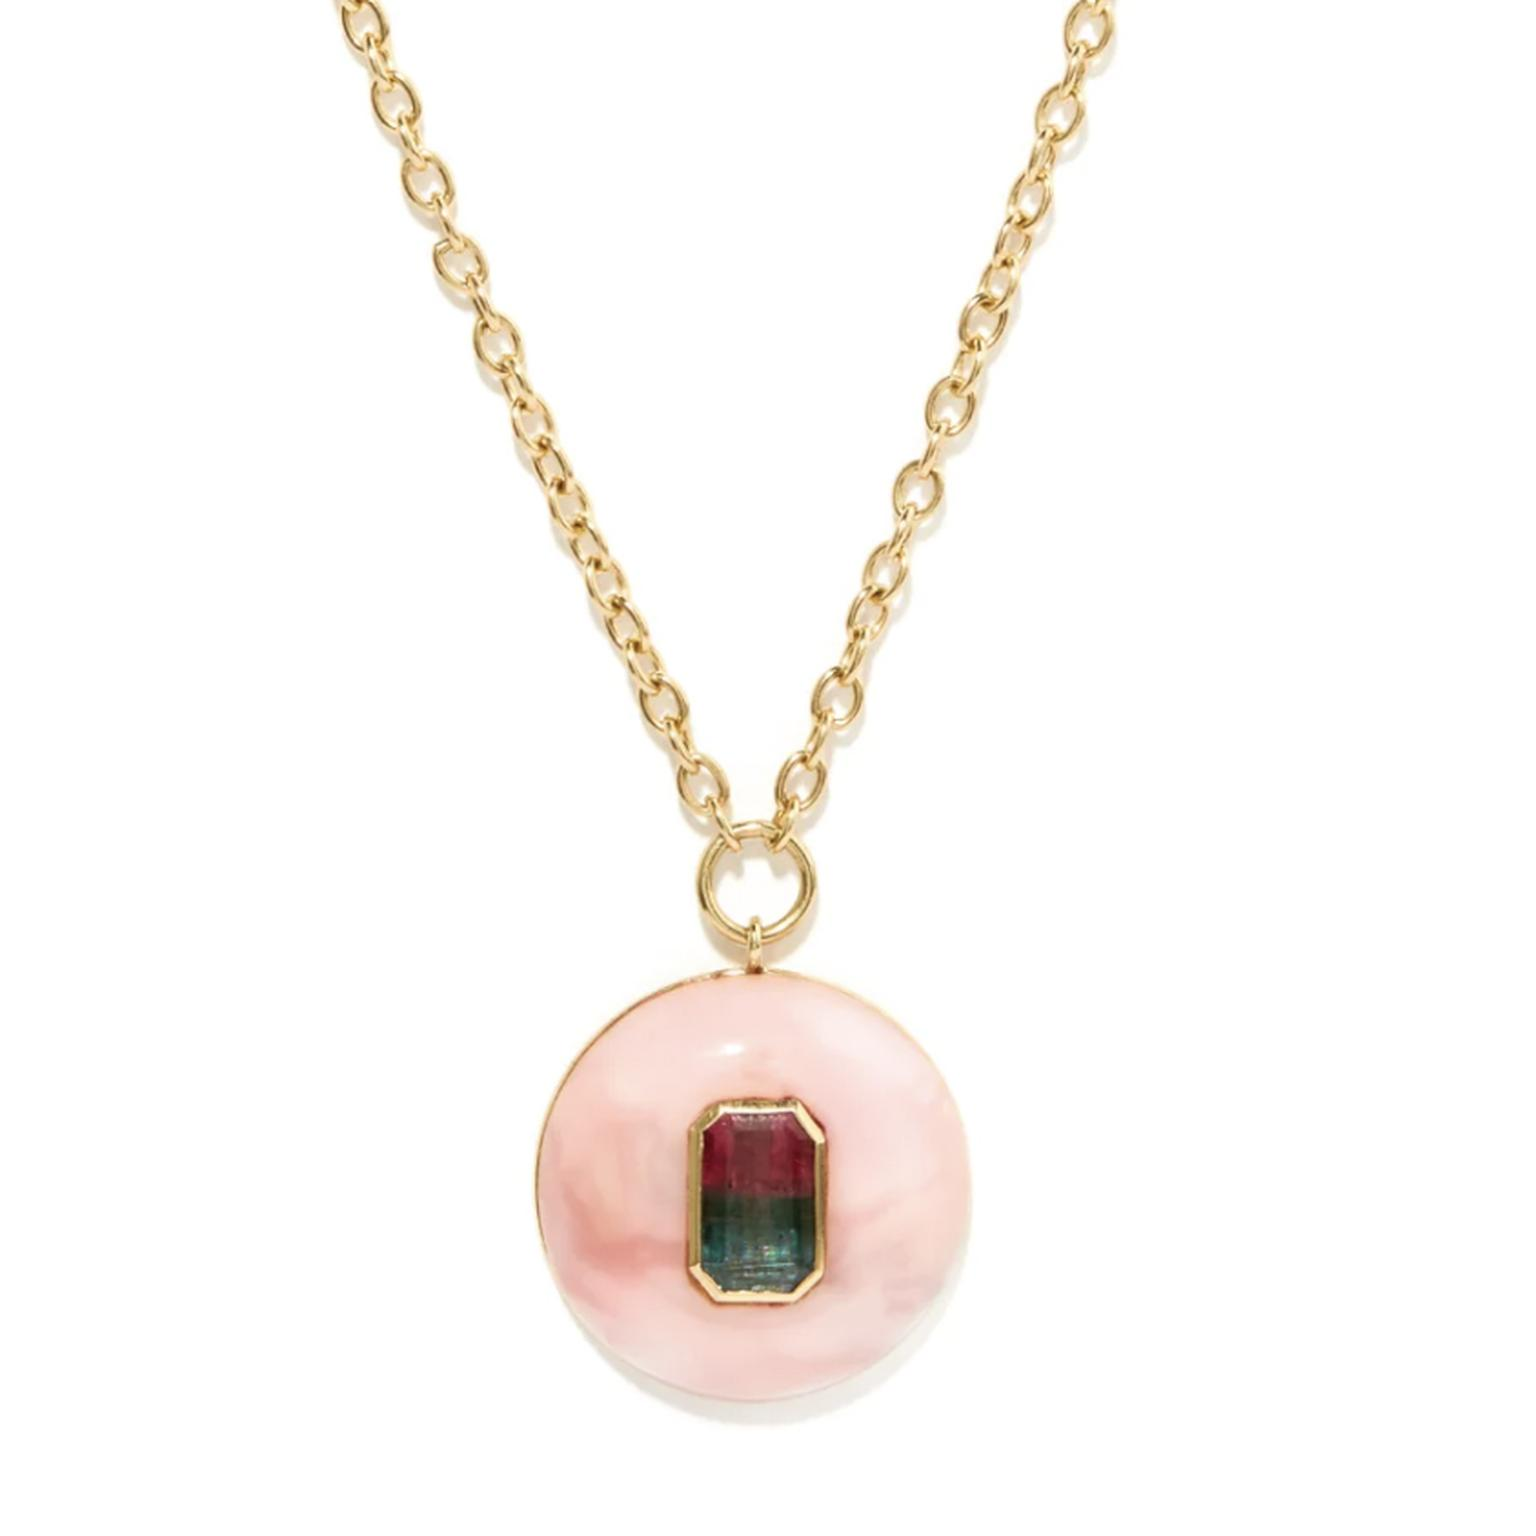 RETROUVAI Lollipop tourmaline, opal & 14kt gold necklace  £3,678